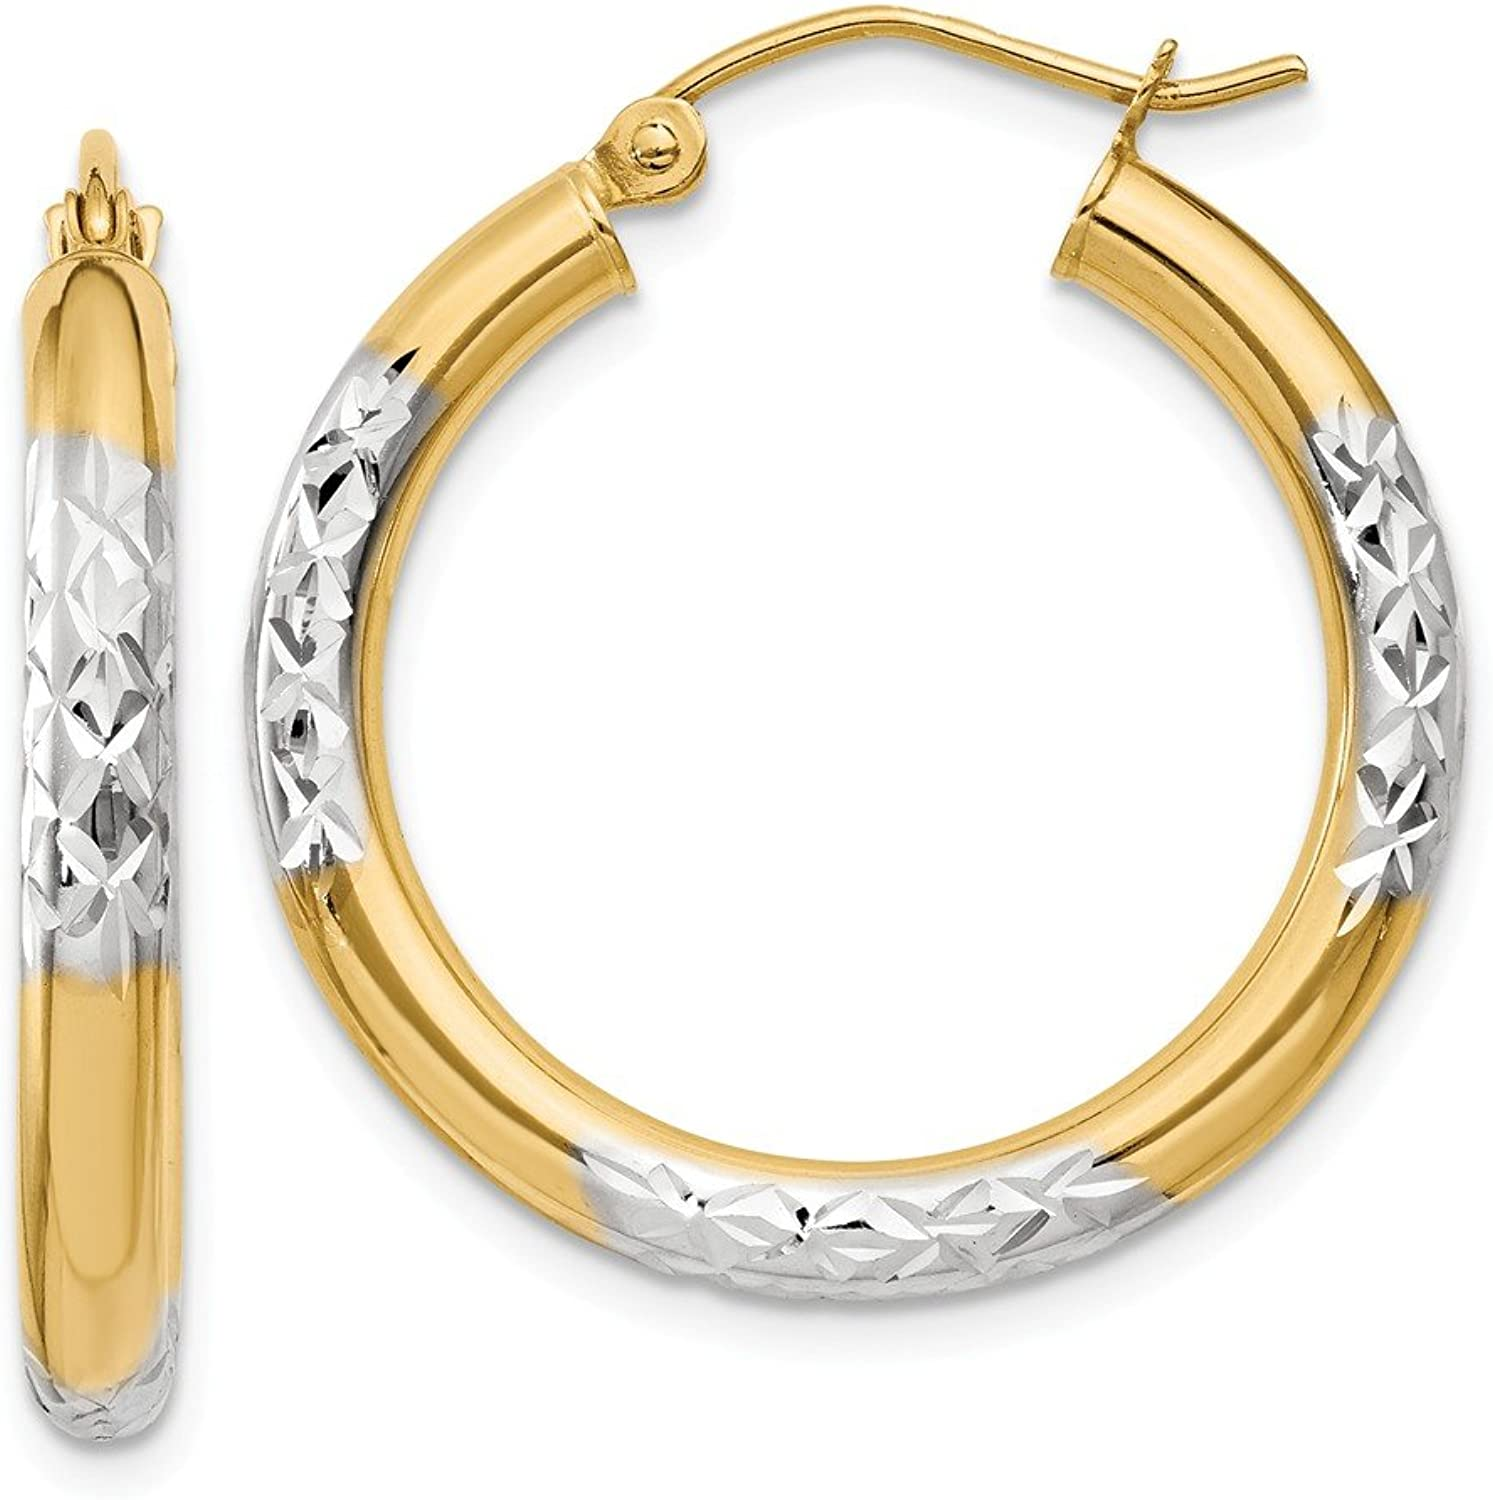 Beautiful rhodium plated gold and silver 14K rhodiumplatedgoldandsilver 14K & Rhodium Diamondcut 3x25mm Hoop Earrings